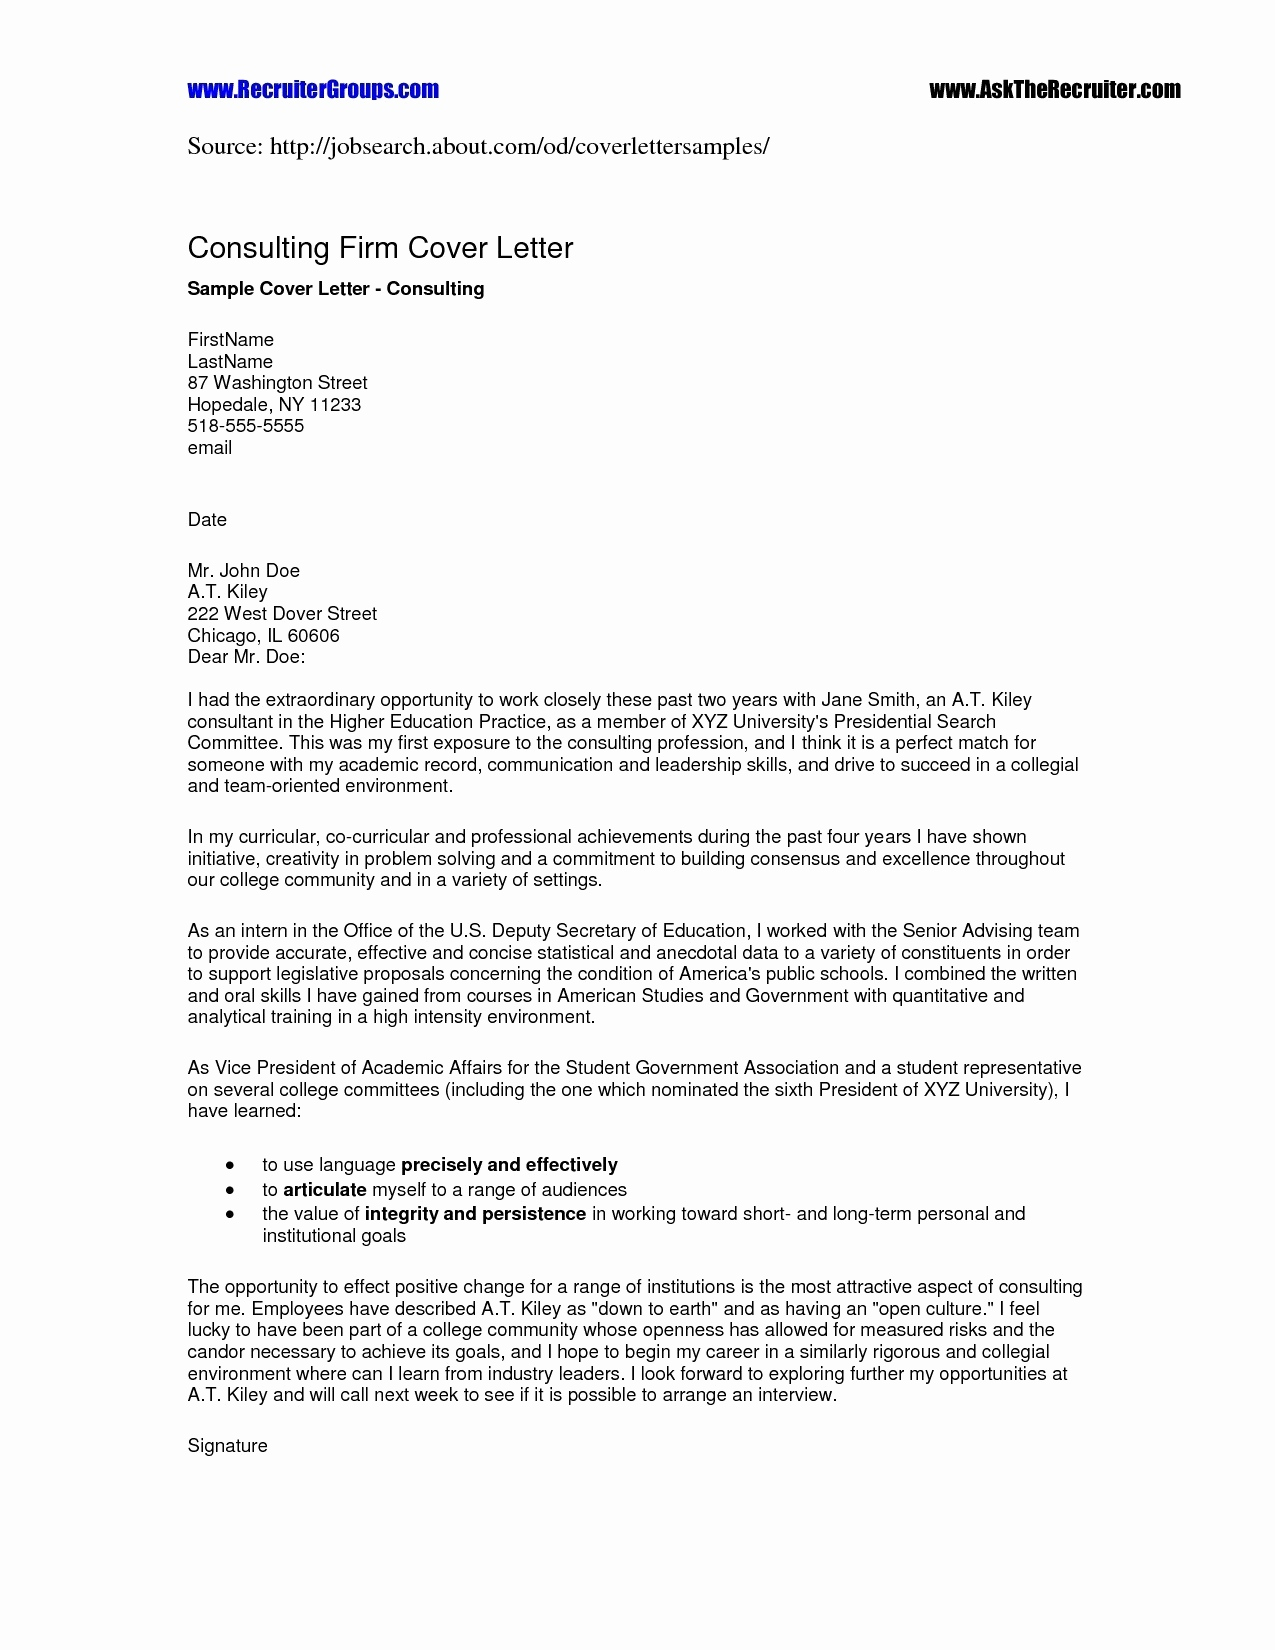 Relocation Cover Letter Template - Relocation Cover Letter Samples Fabulous Relocation Cover Letter